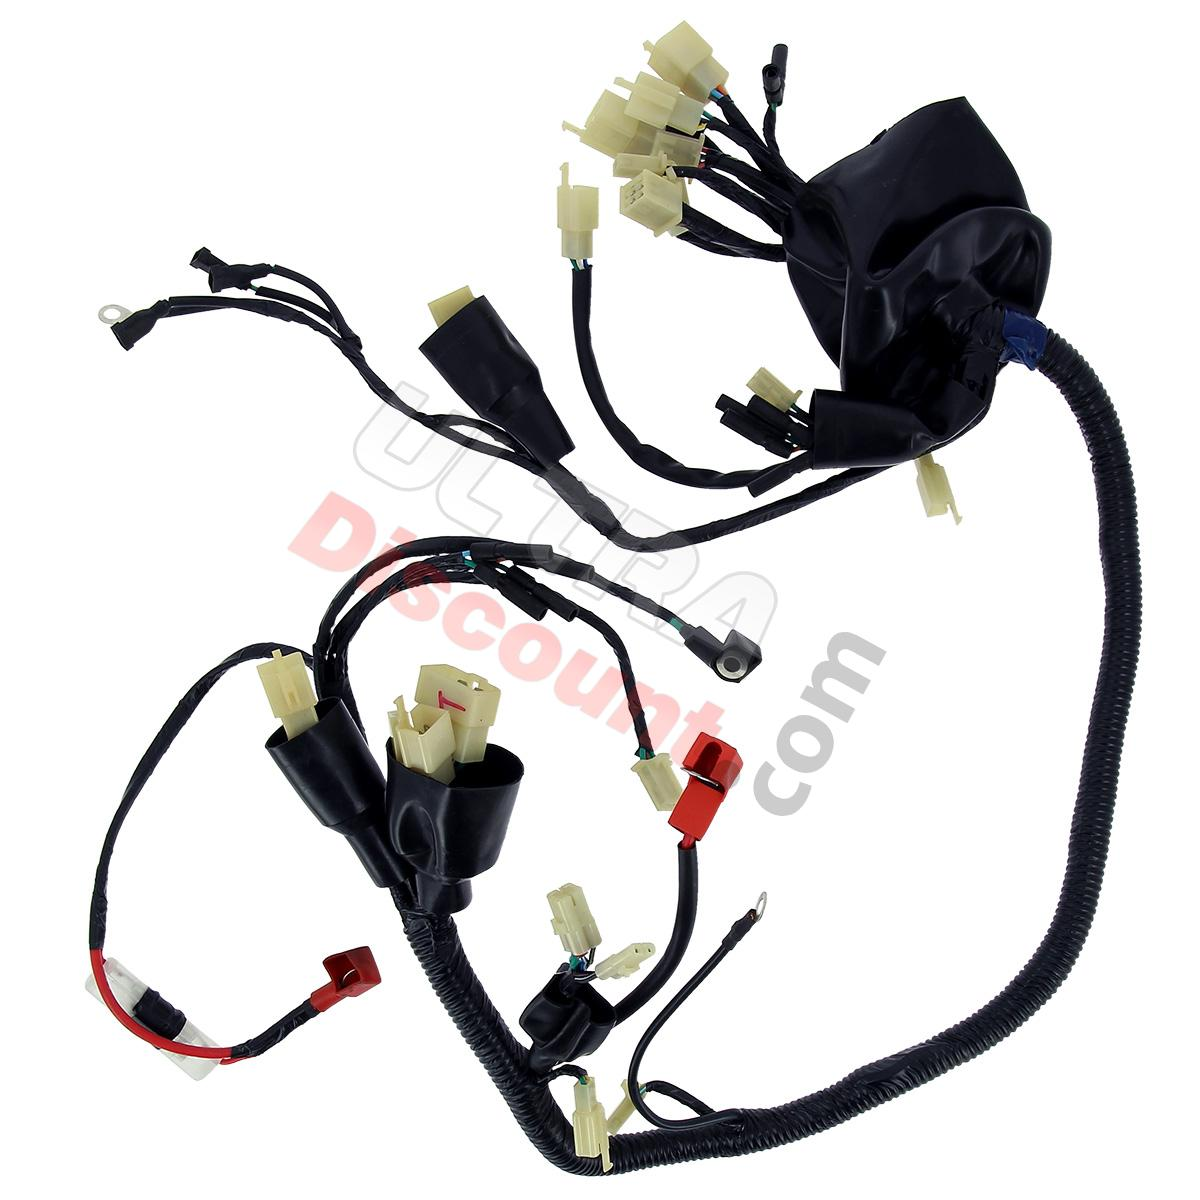 Wire Harness For Atv Shineray Quad 200cc Stiie B Ignition Wiring Parts 200stiie And